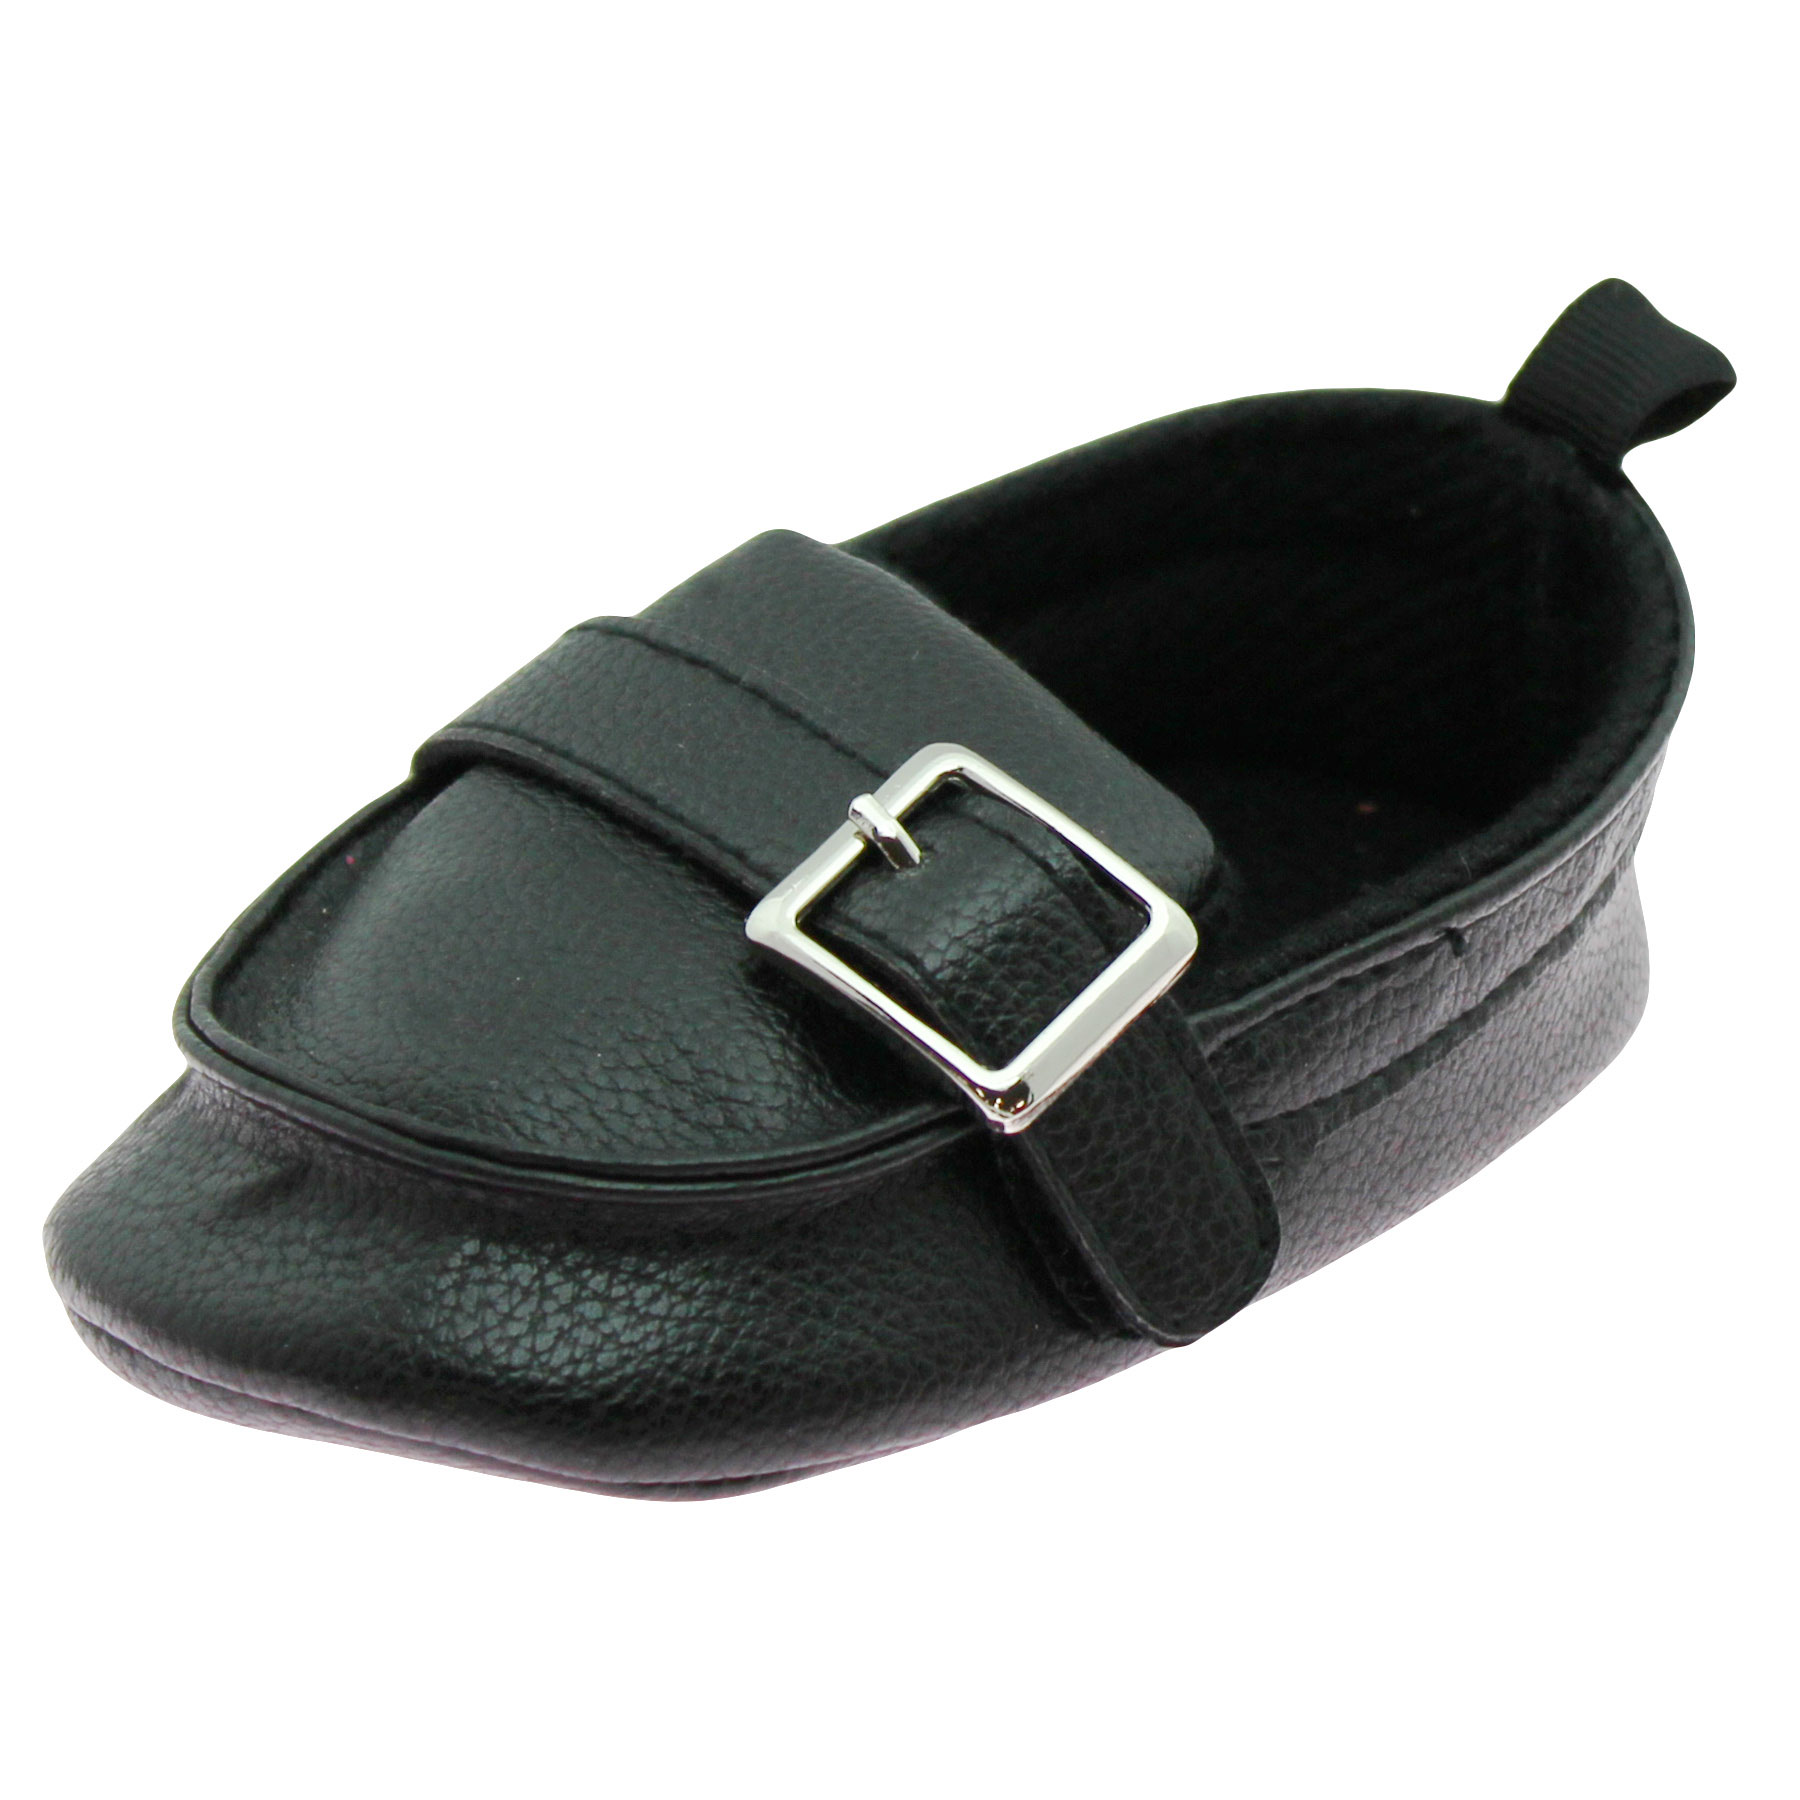 New Slip On Flats For Baby Toddler Girls Or Boys Faux Leather Shoes Size 4-9